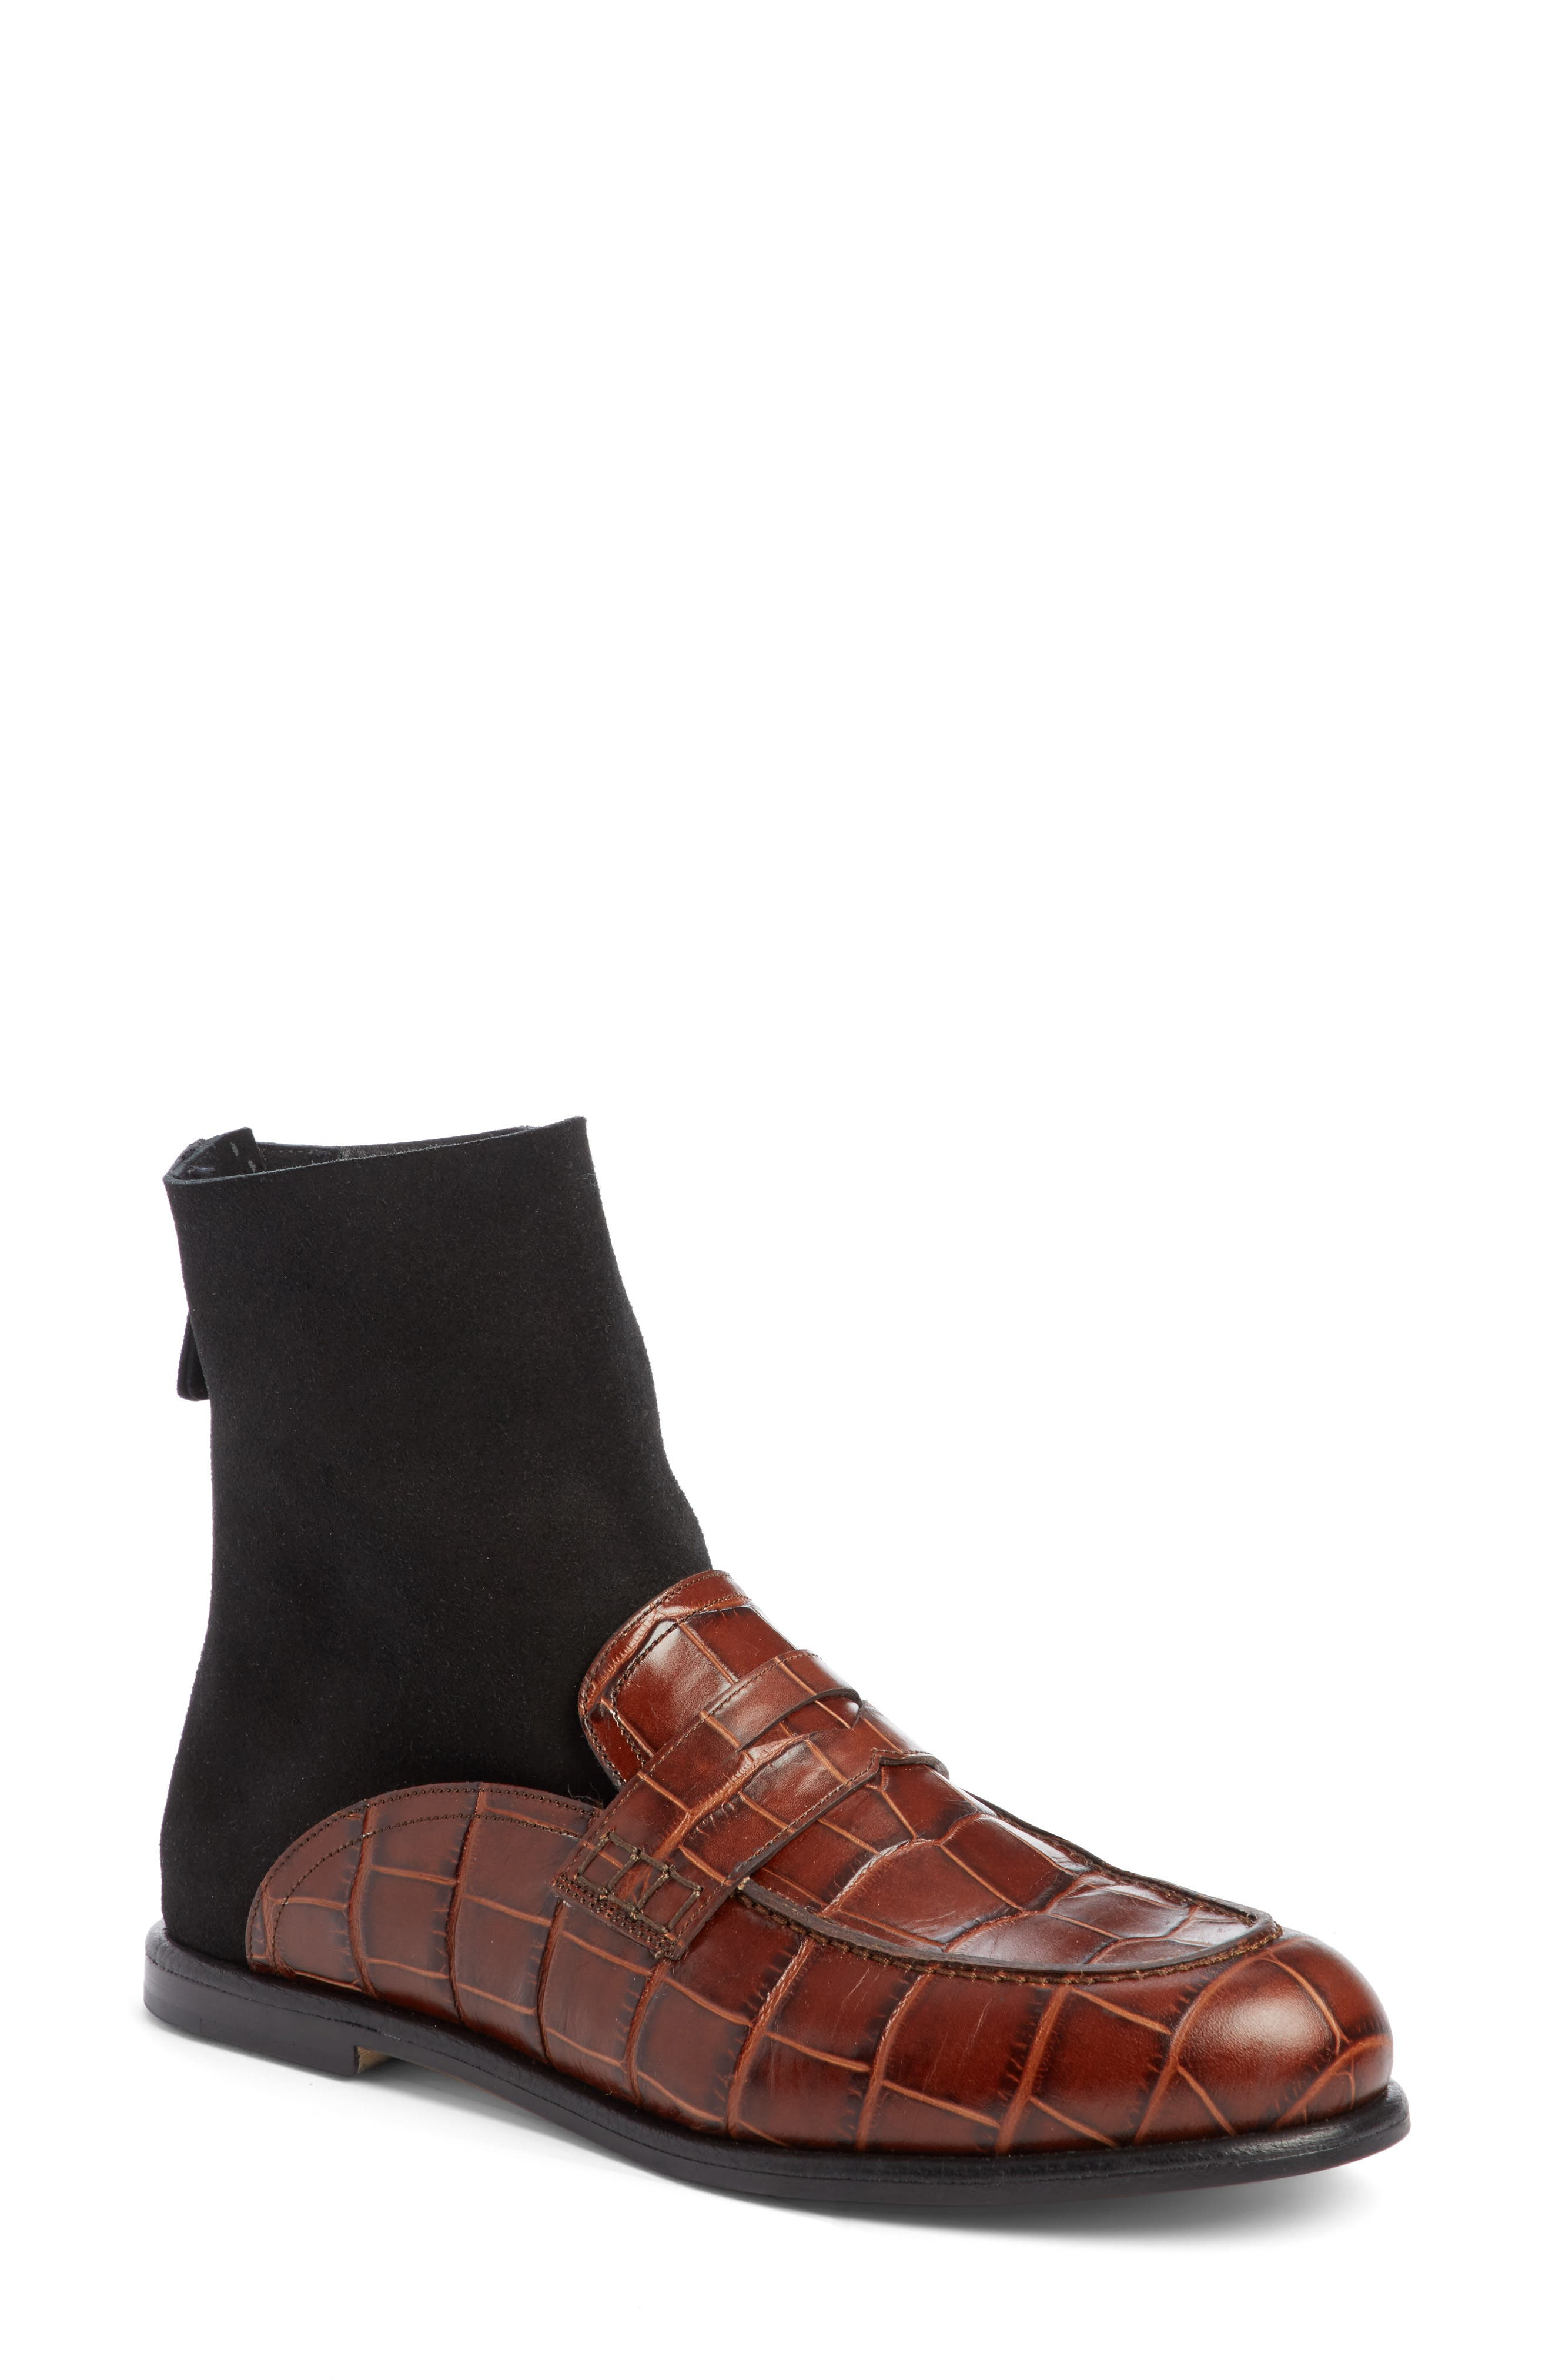 Loewe Sock Boot Loafer (Women)